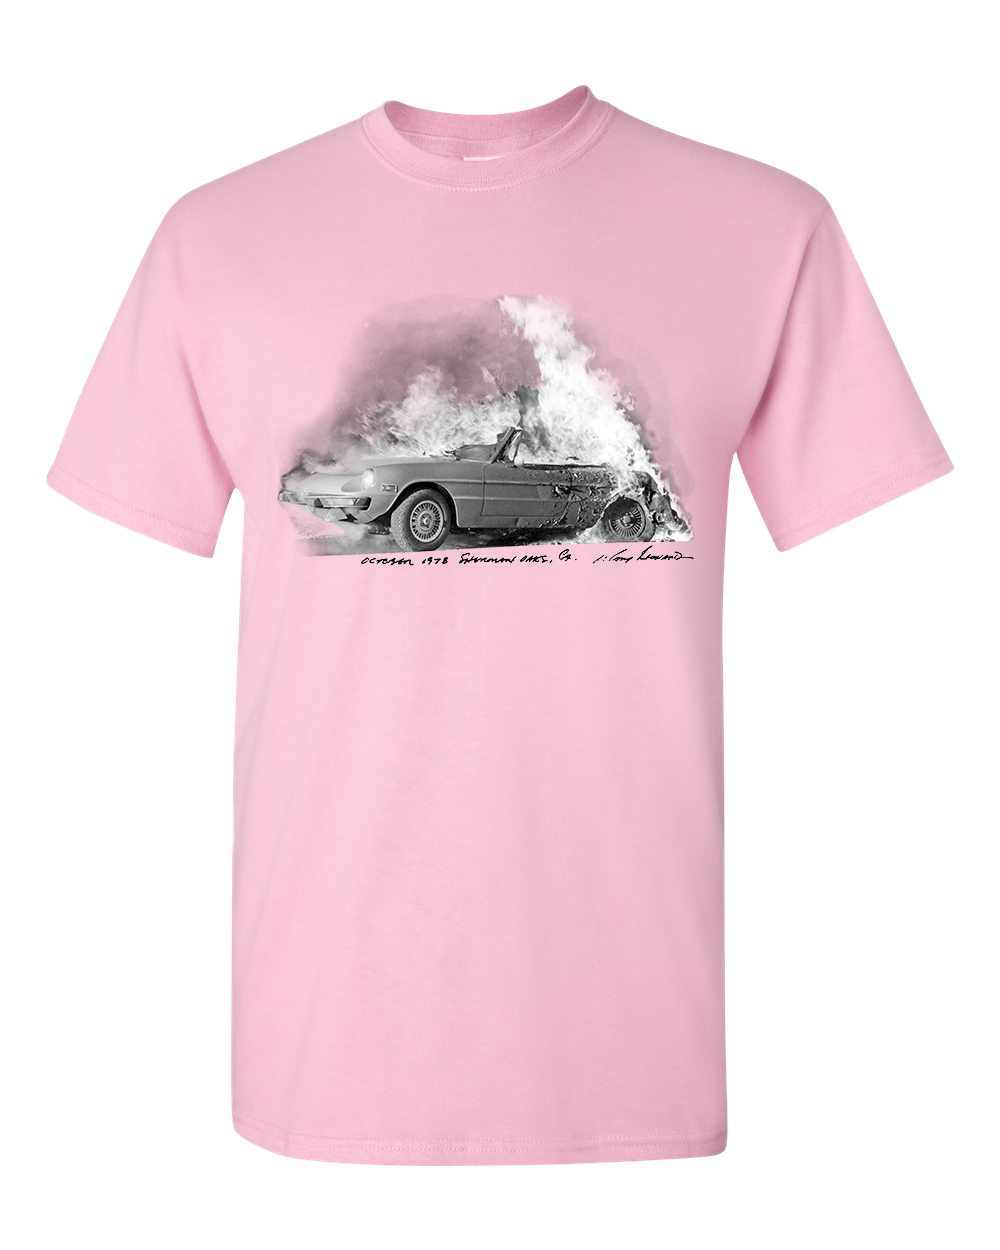 ICL SS Product - burning car pink.jpg